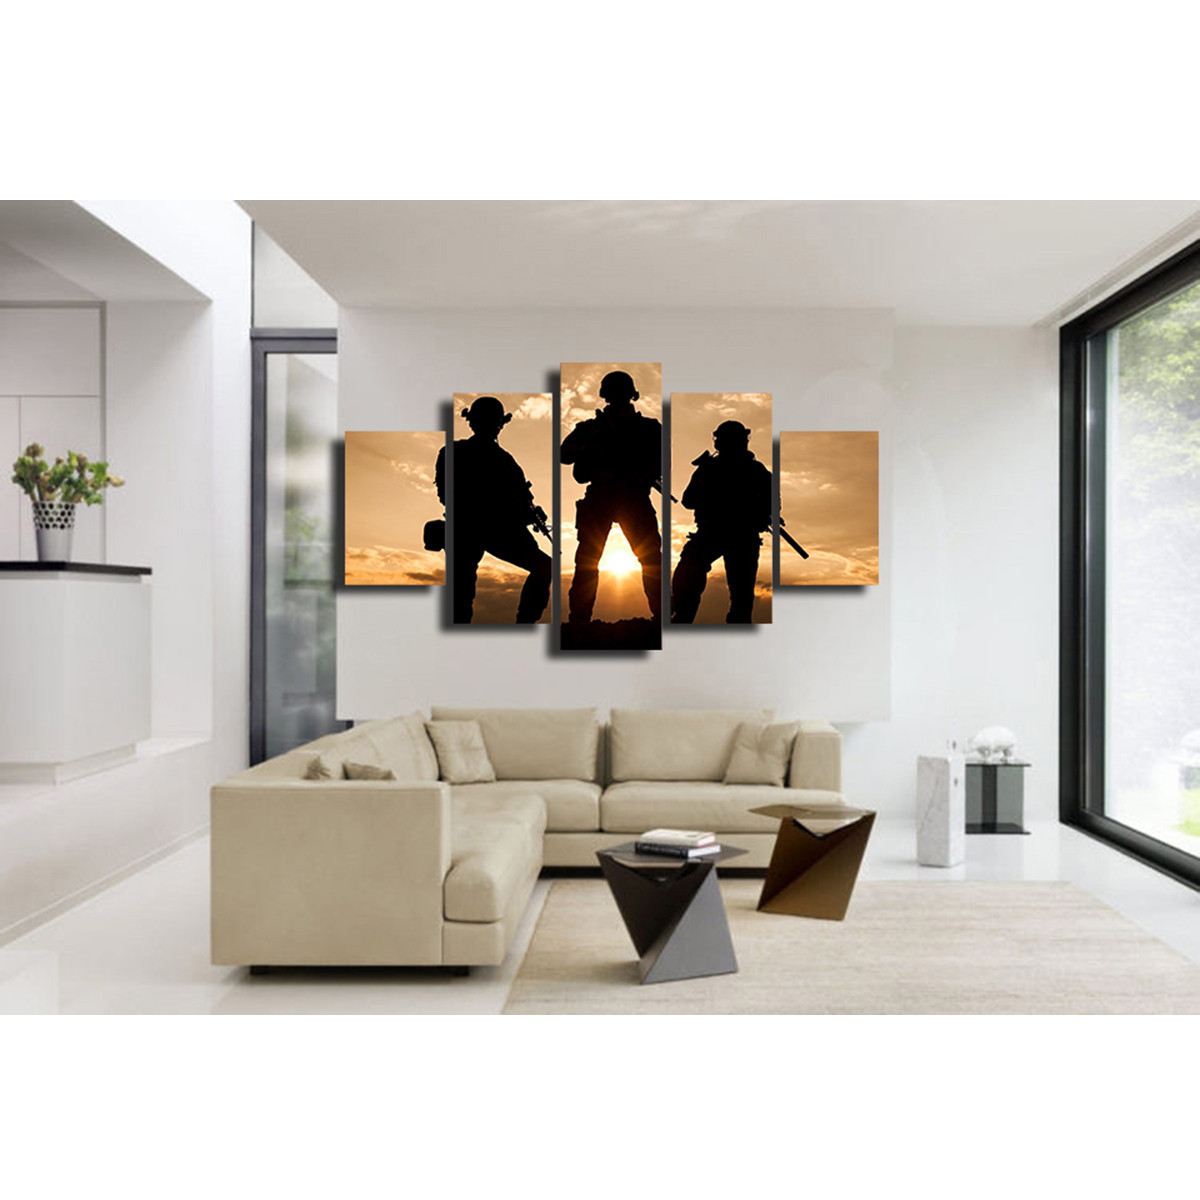 Military Bedroom Decor Popular Military Soldiers Pictures Buy Cheap Military Soldiers